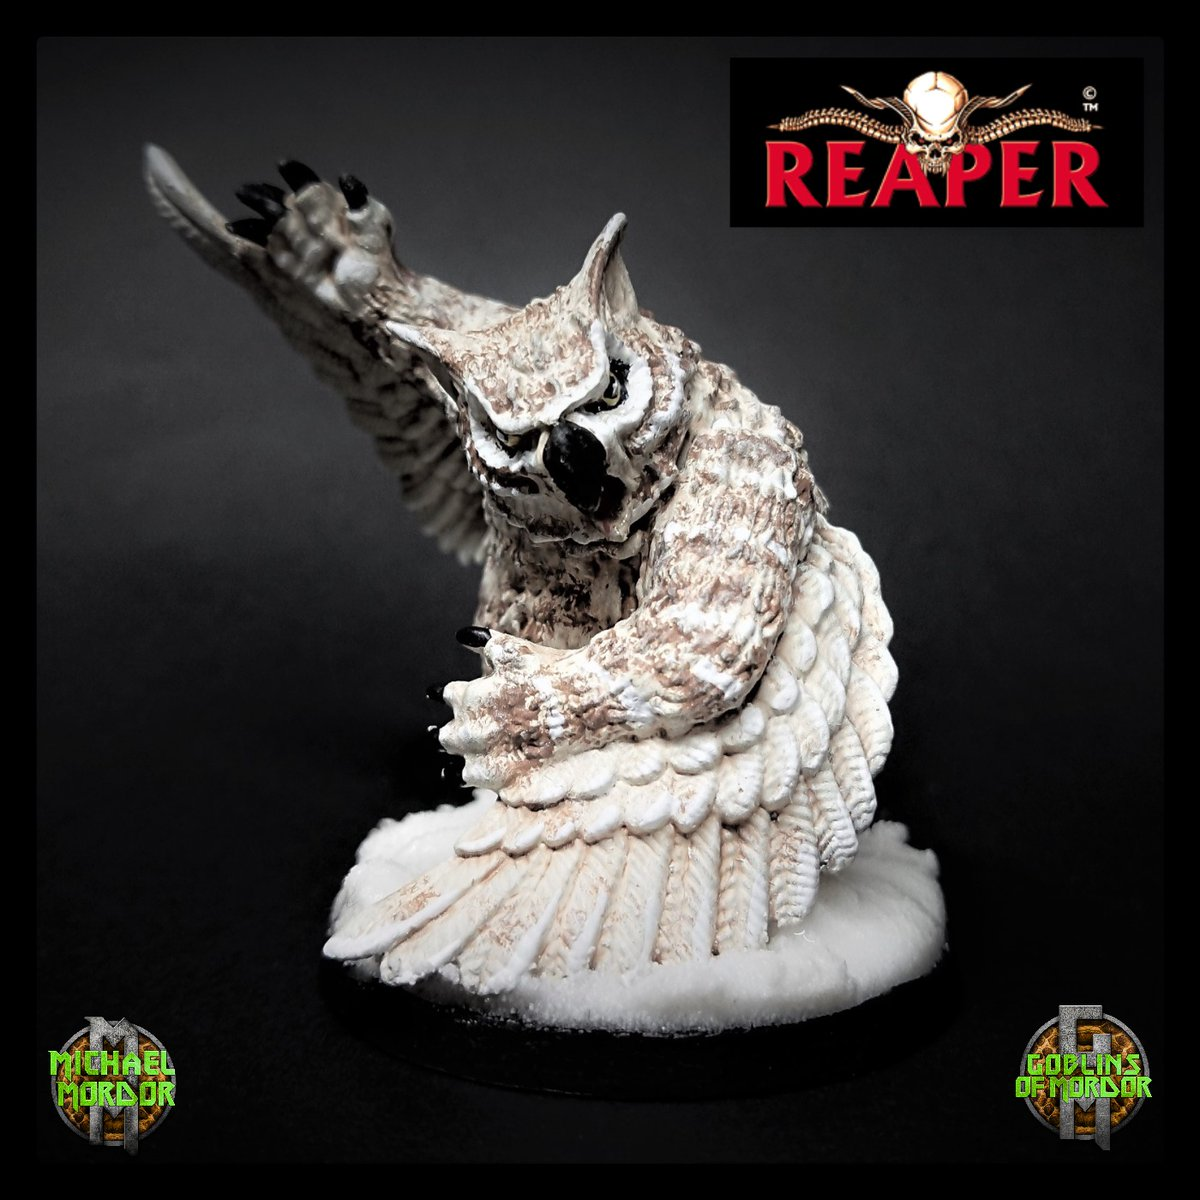 Good Morning Twitter friends. 😍🧙♂️ My YouTube, Every Week new videos from  @reapermini #DnD https://t.co/YowIaCVJXL Plus watch me live on Twitch Tues, Thurs, Sat at 7p.m UK time and Sunday 3p.m  https://t.co/tT7r48amlO https://t.co/Quj2ajo5Uf